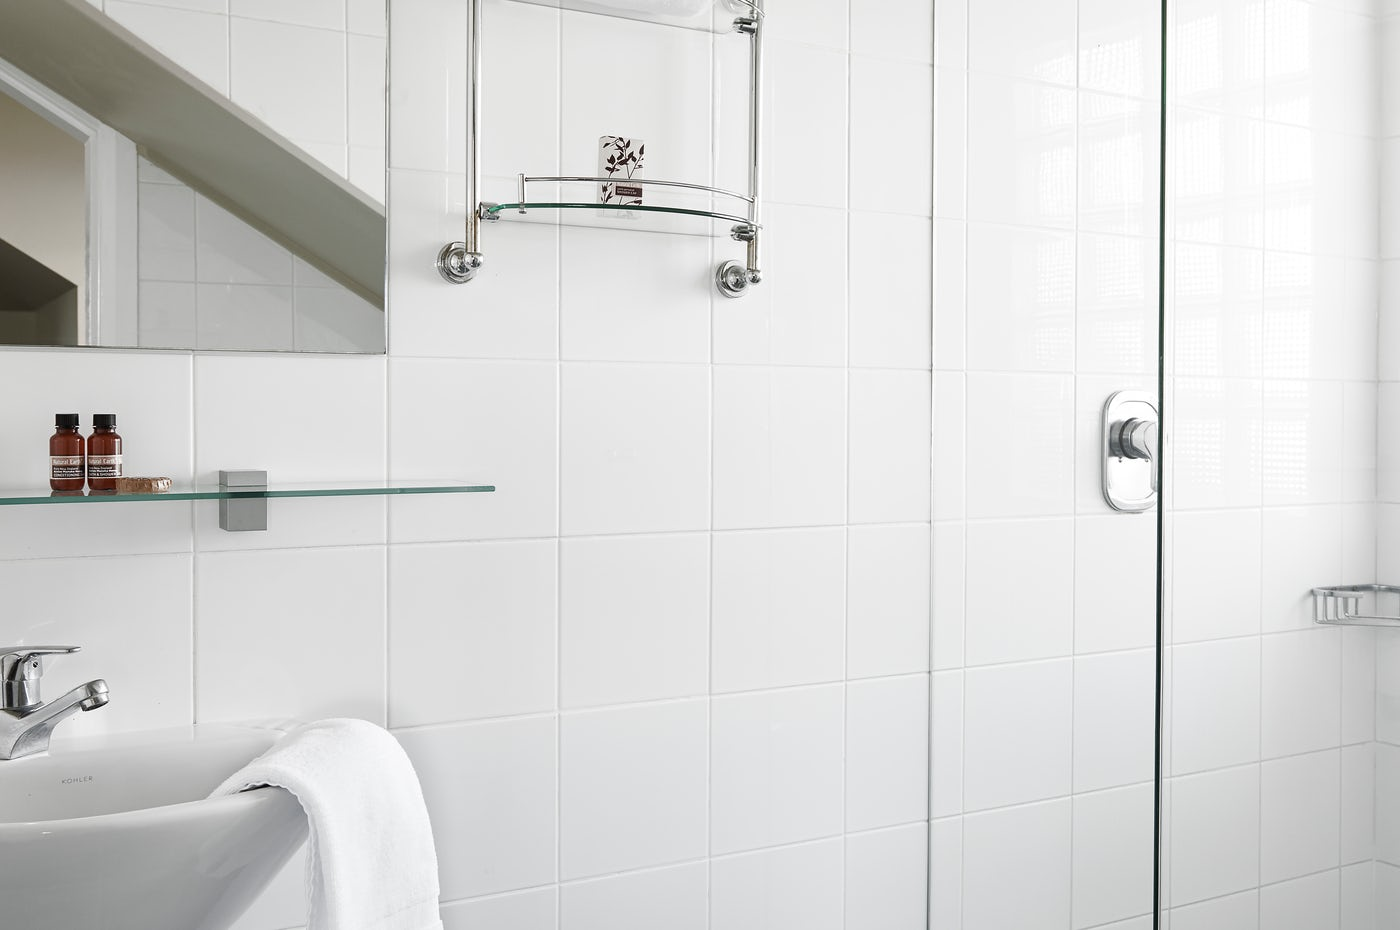 Bathroom in Studio at Boutique Sydney Accommodation - Vulcan Hotel, Ultimo